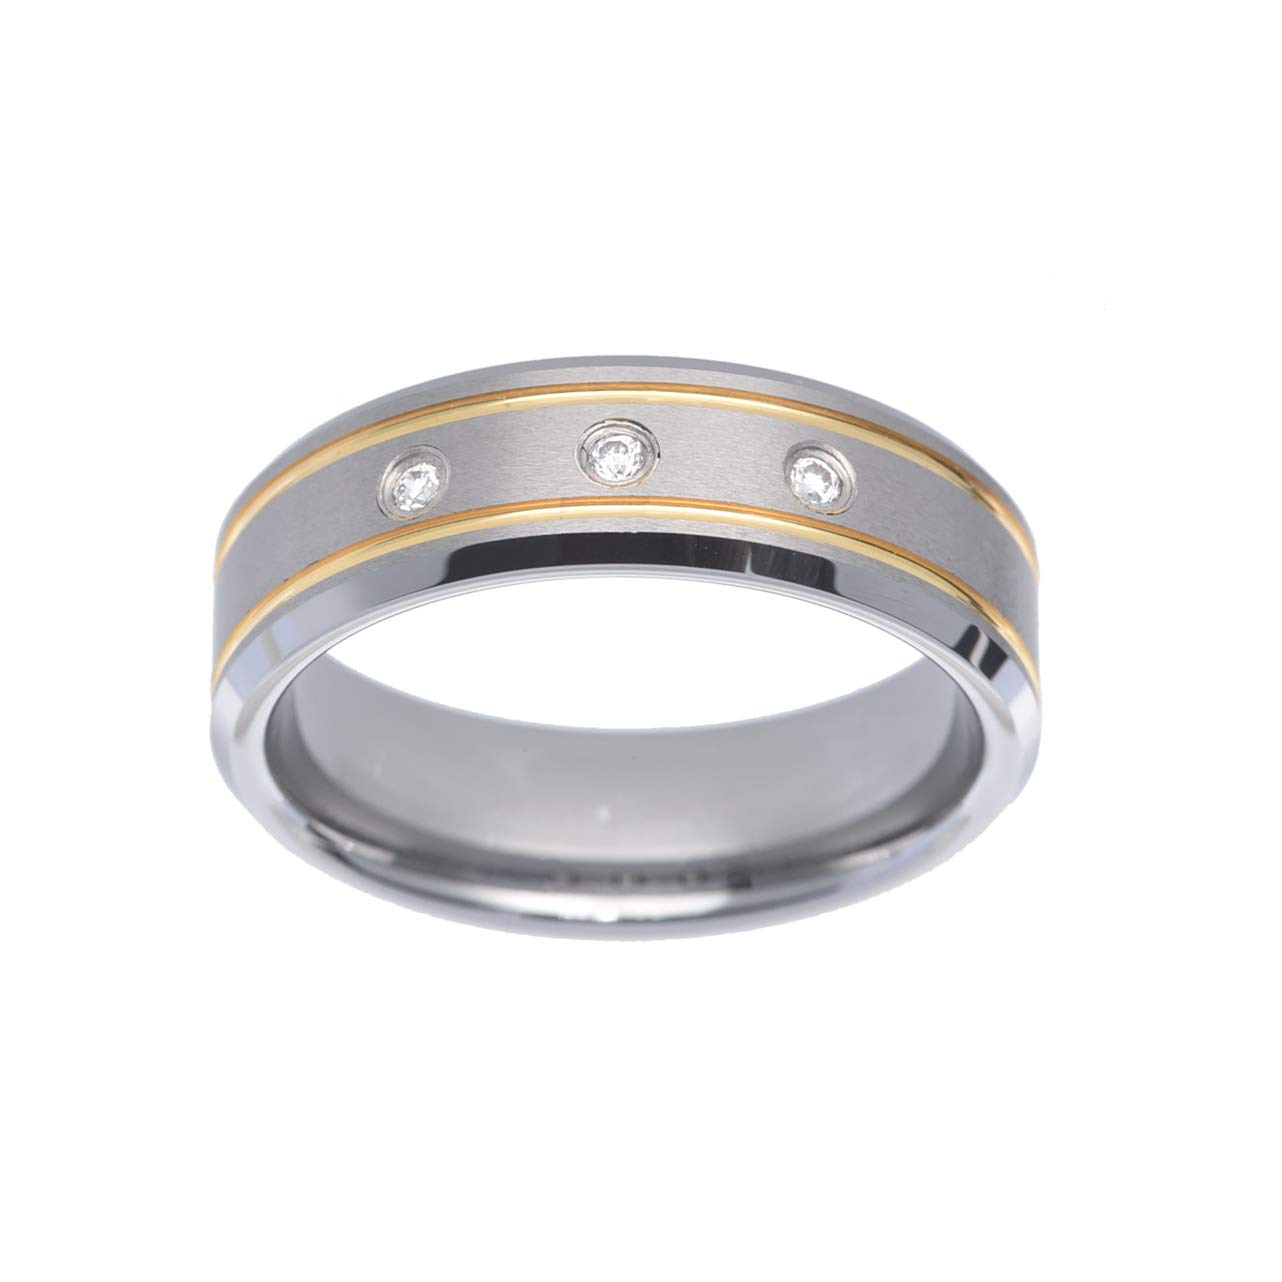 FlameReflection Tungsten Wedding Rings for Men Gold Plated Grooves CZ Bevel Edge Two-Tone Polish Band Size 9-13